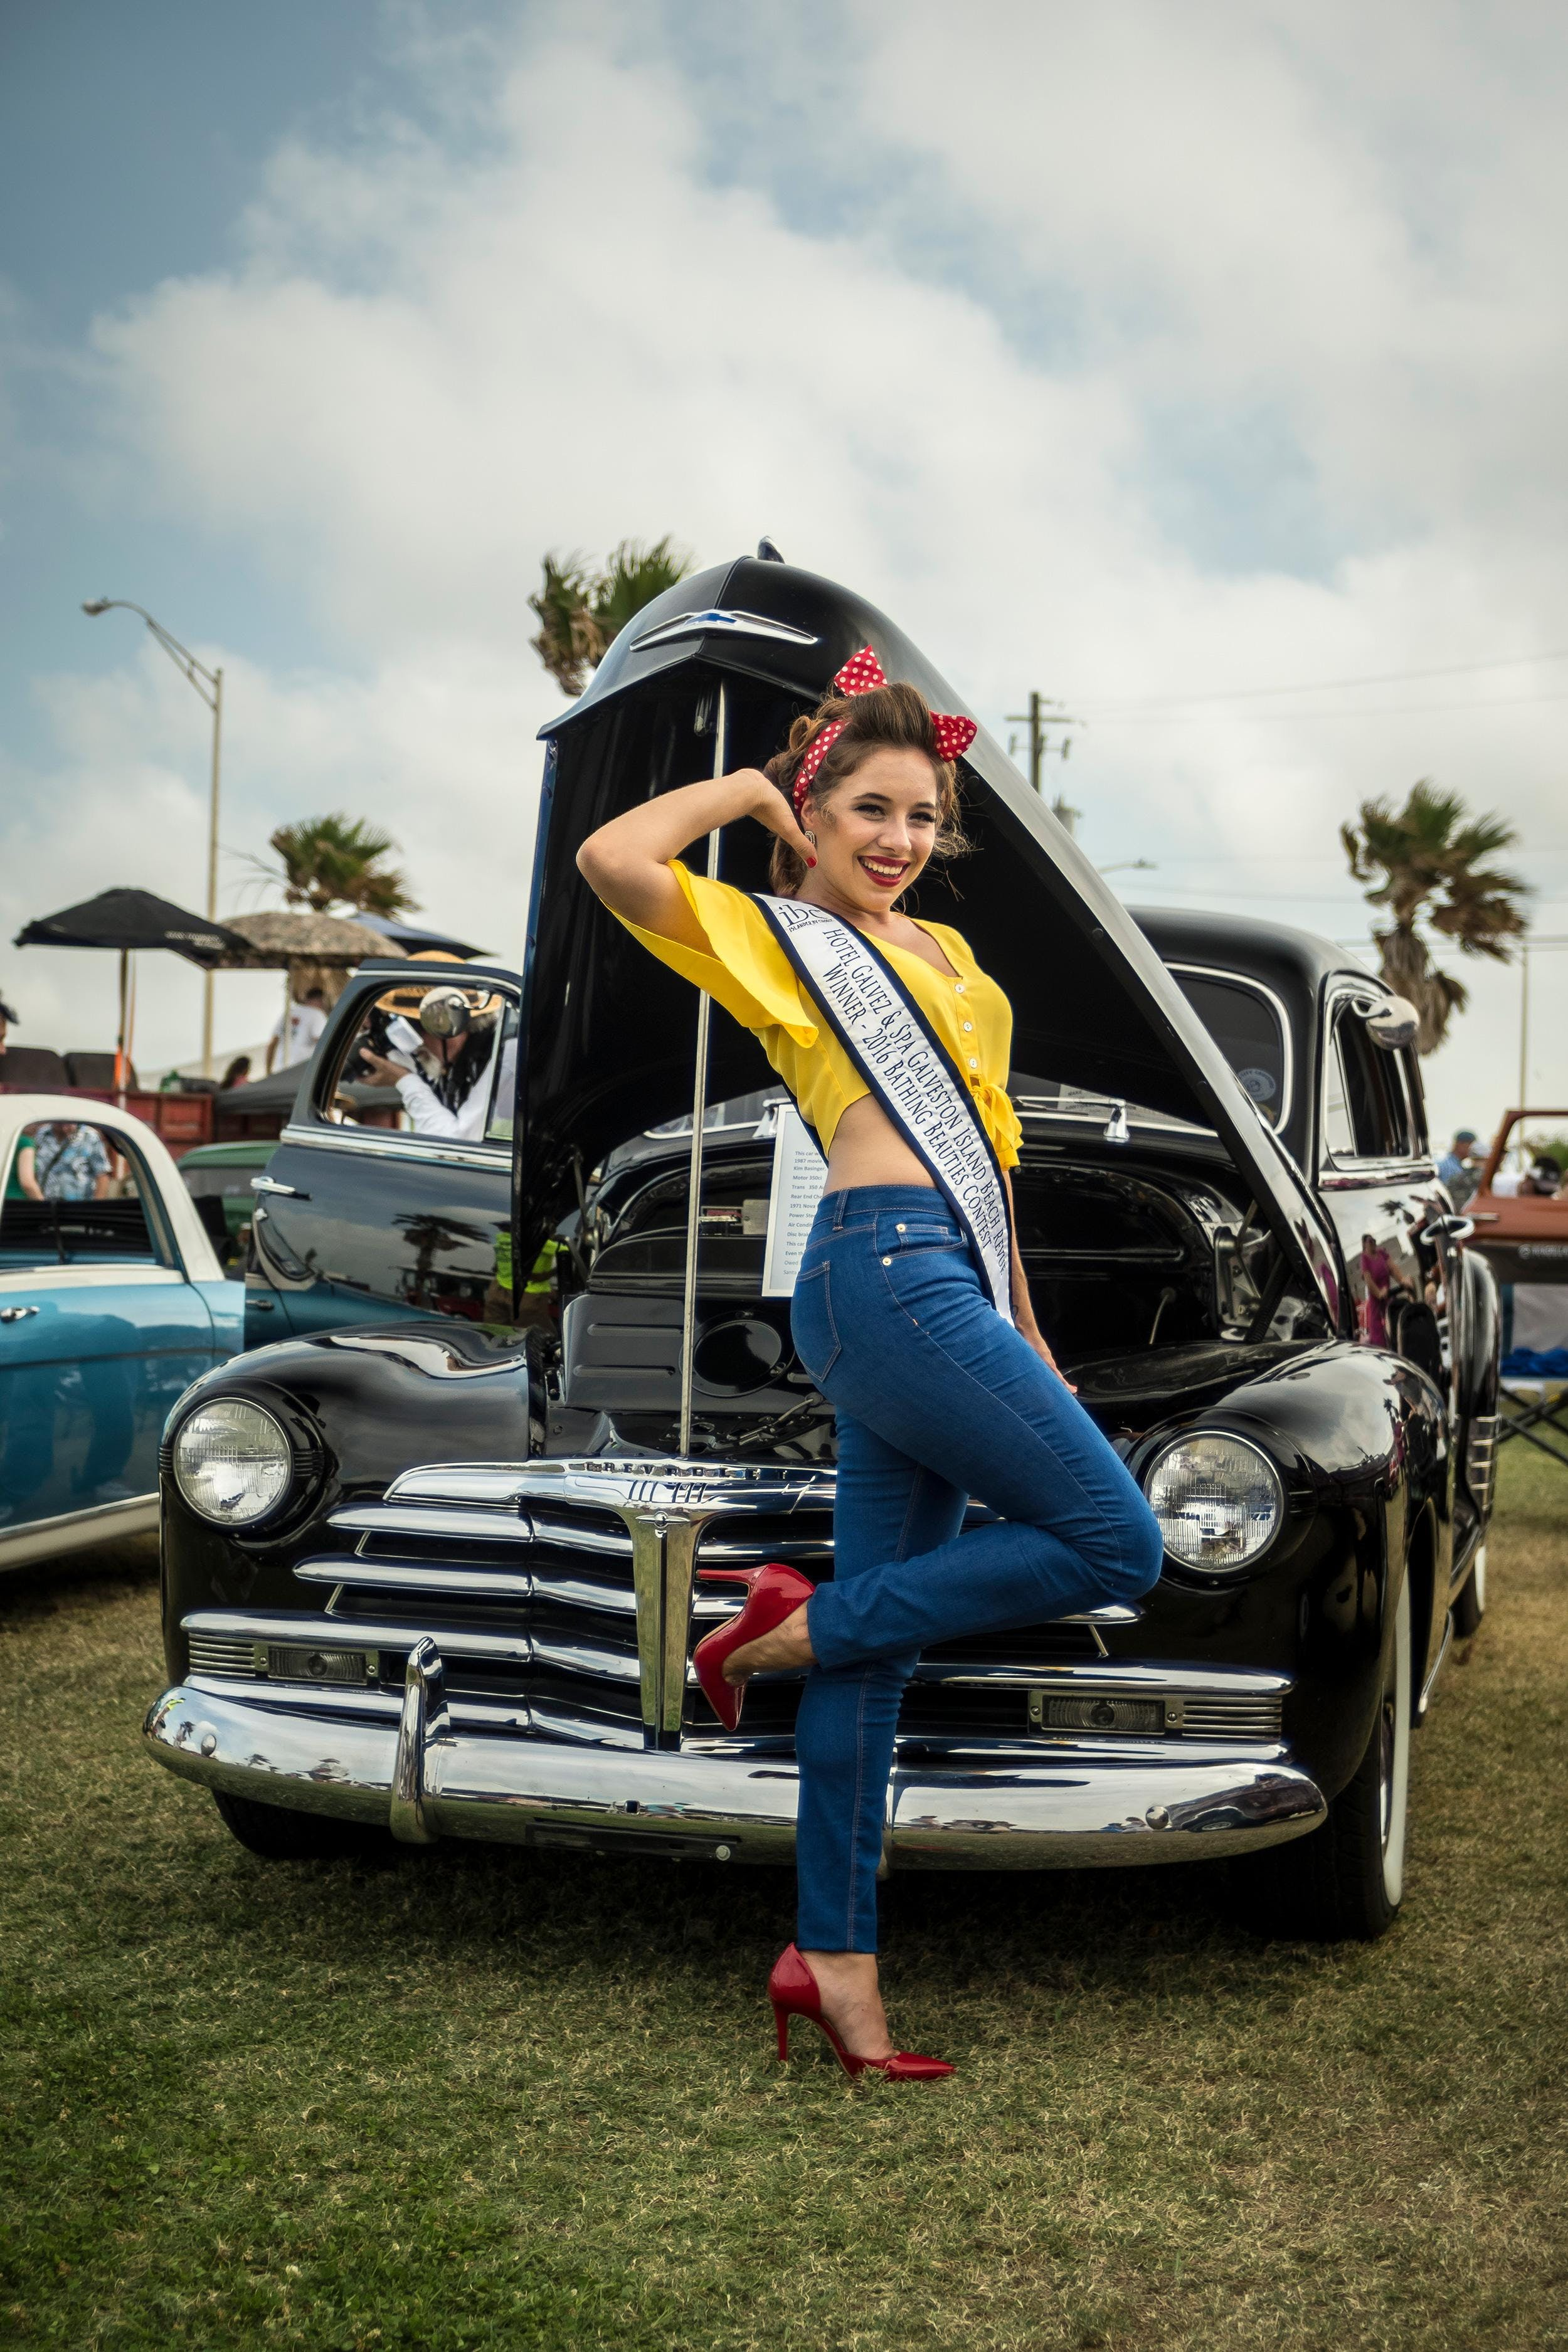 Classic Auto Group Hot Rod & Classic Car Show Registration at Beach